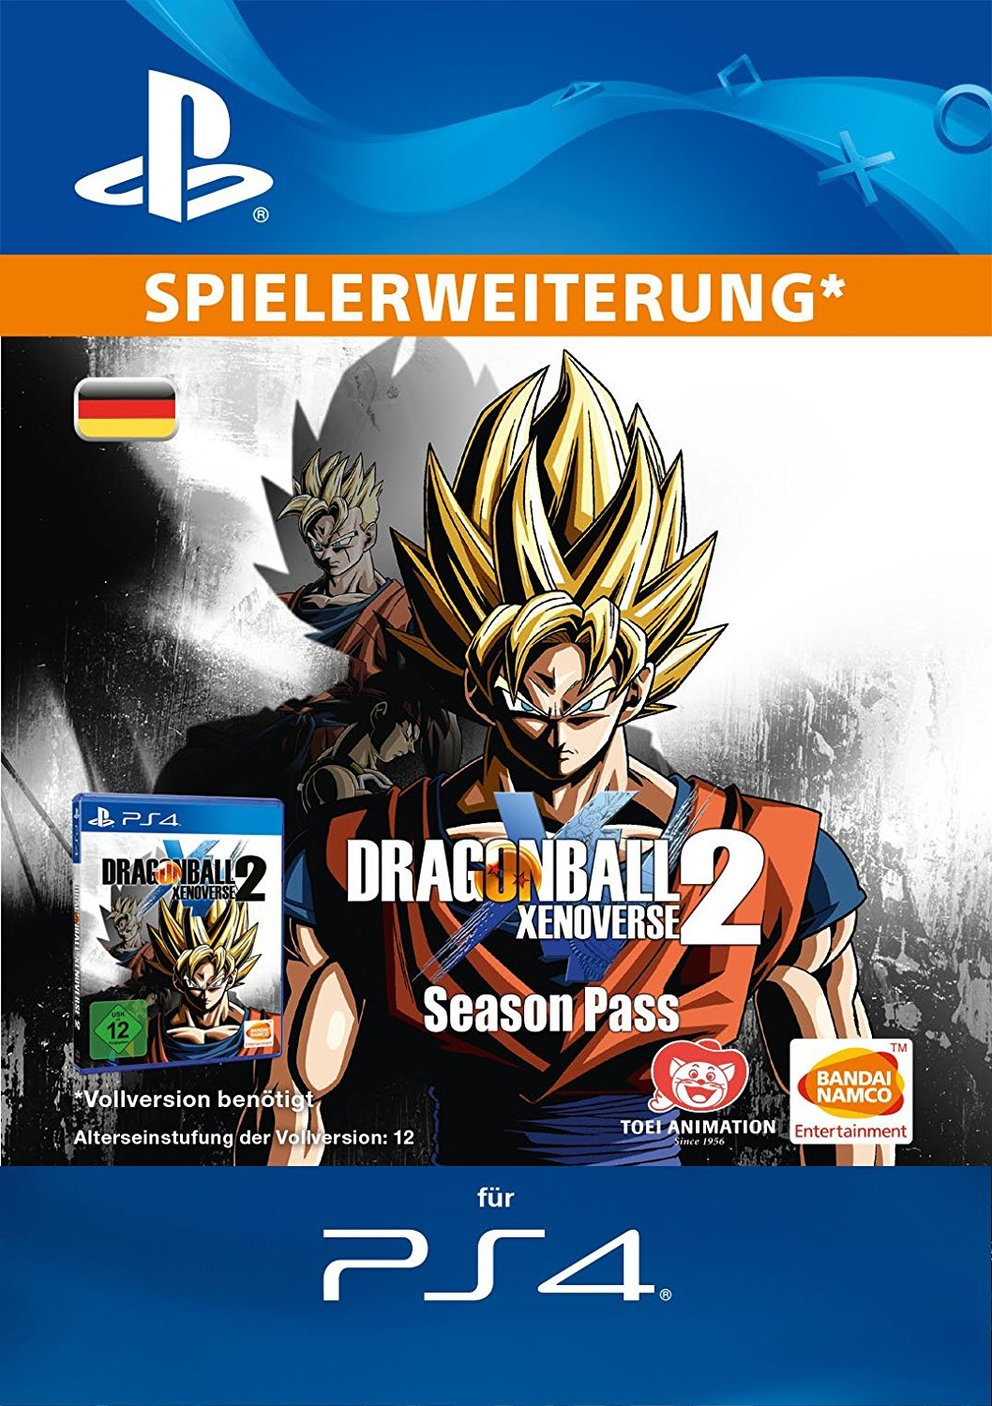 dragon ball xenoverse 2 editionen season pass und vorbestellerboni giga. Black Bedroom Furniture Sets. Home Design Ideas